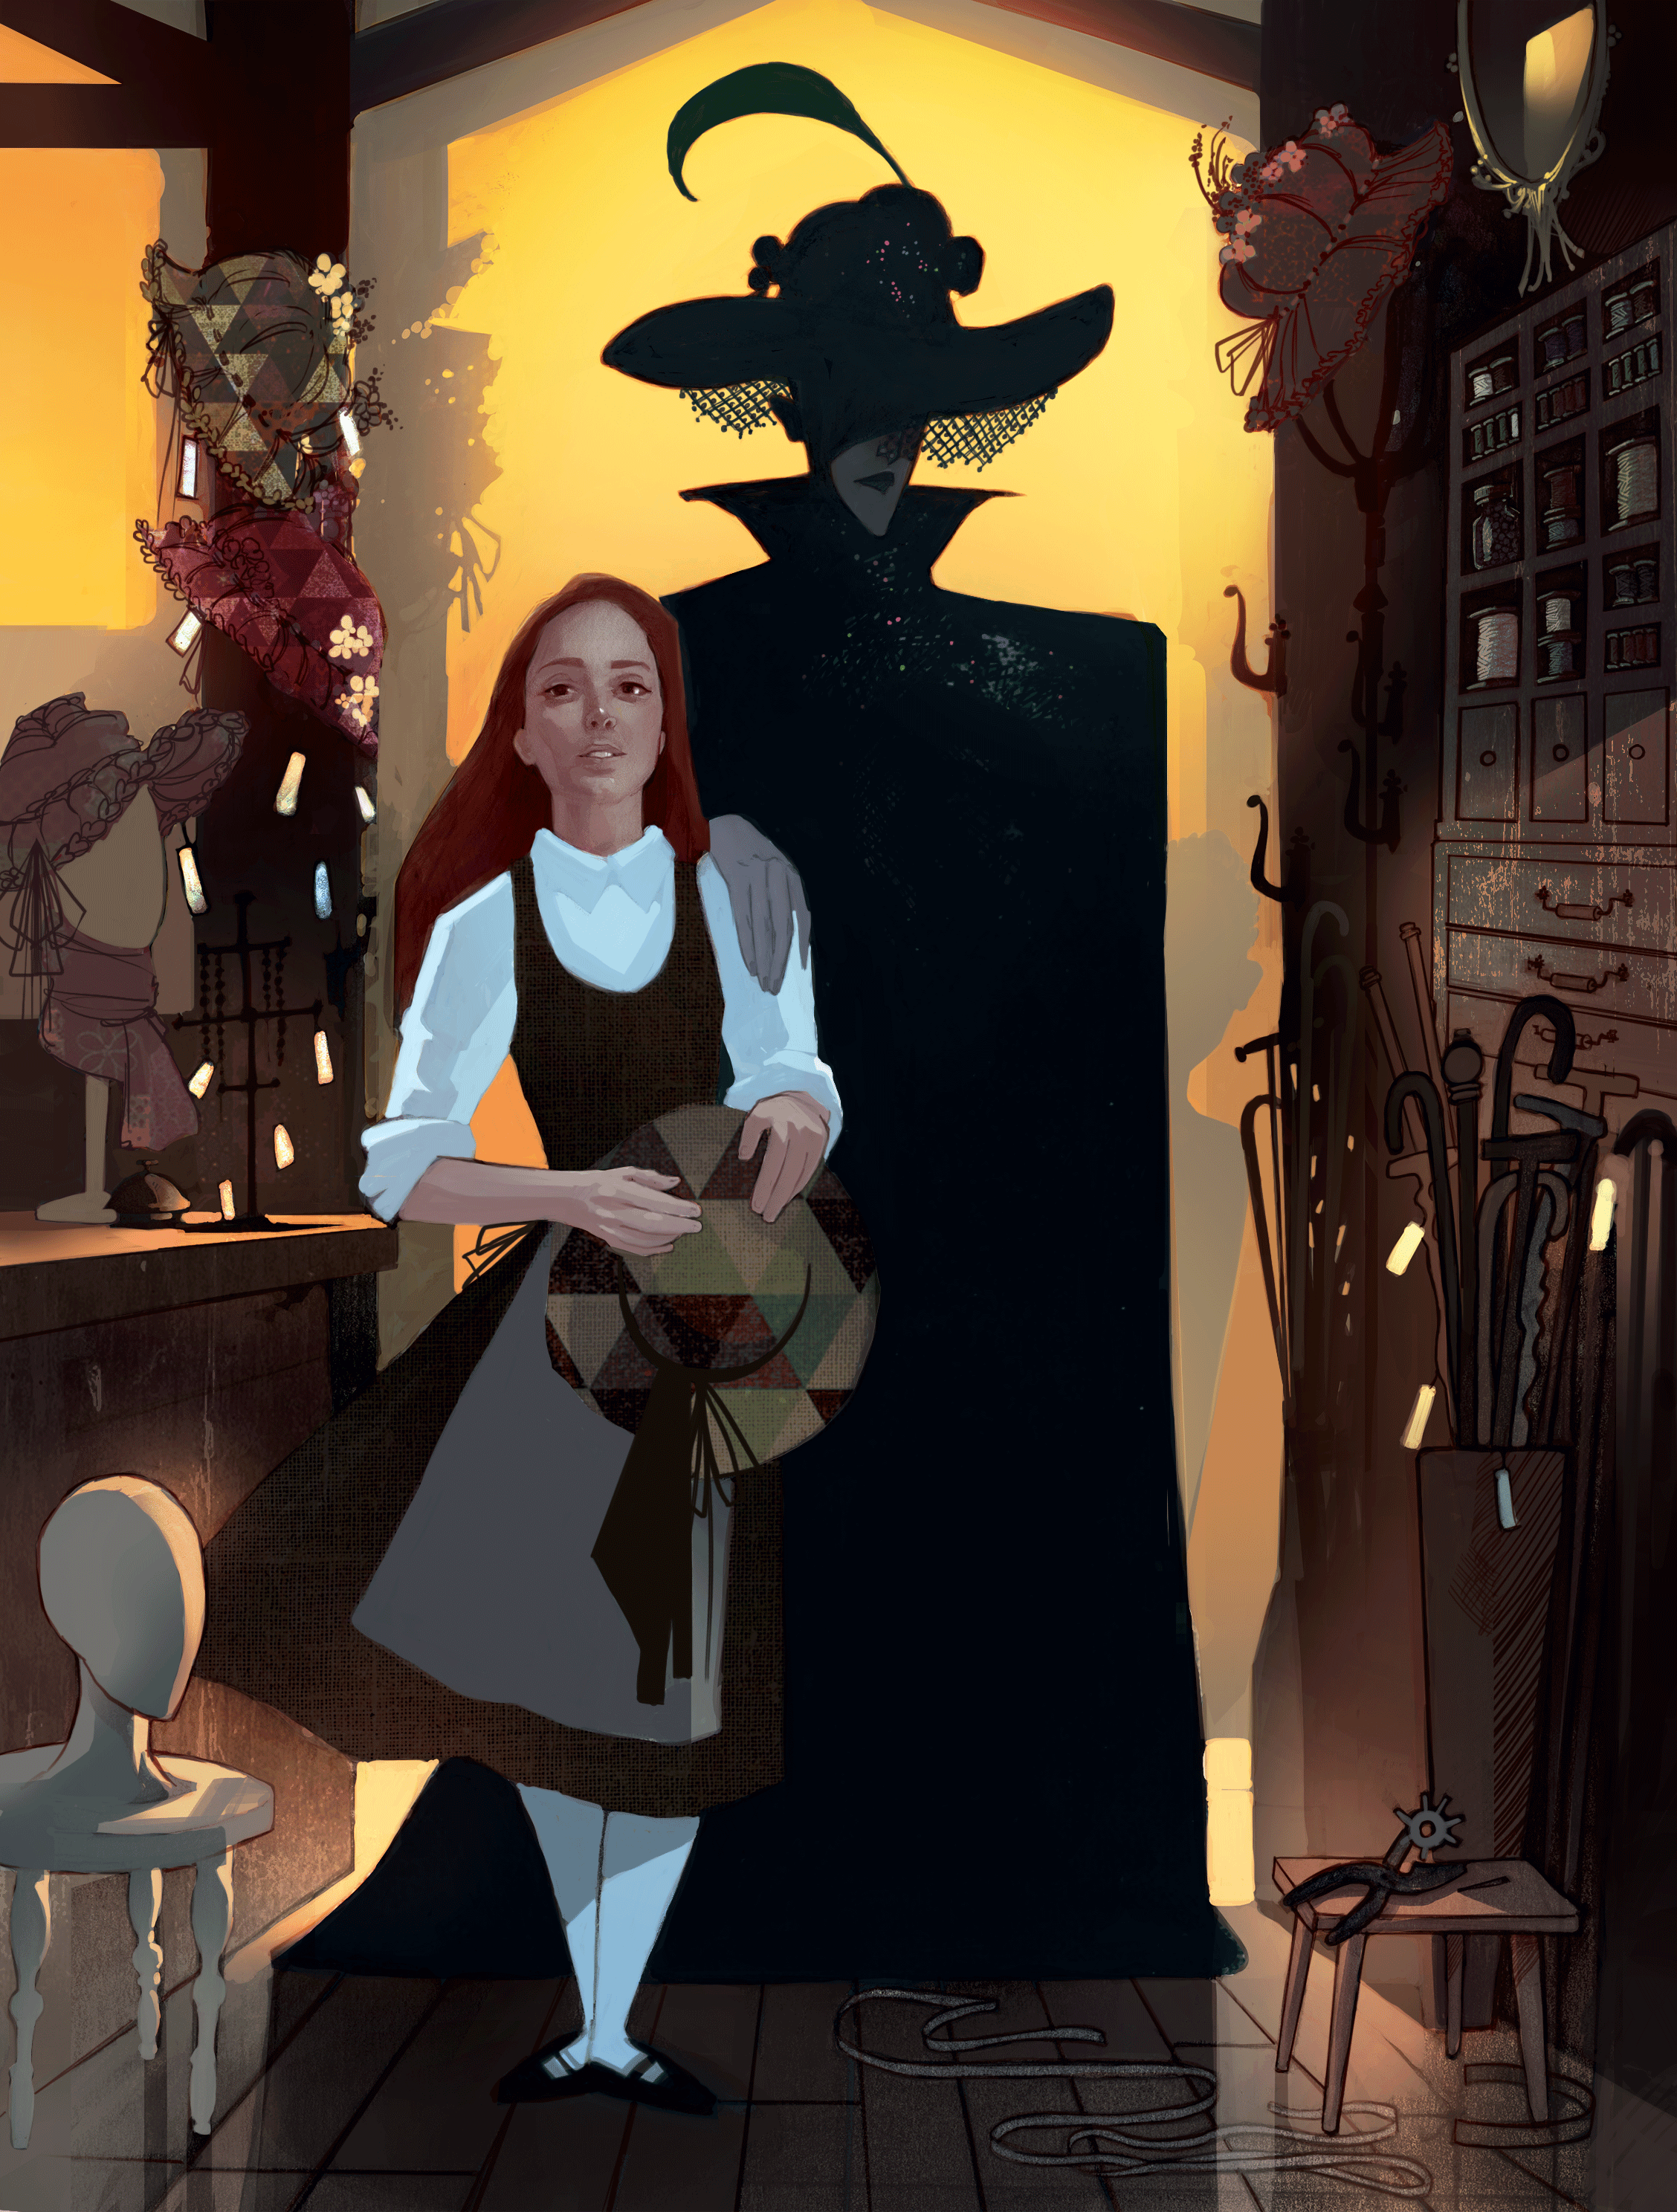 Sophie meets the Witch in the hat store